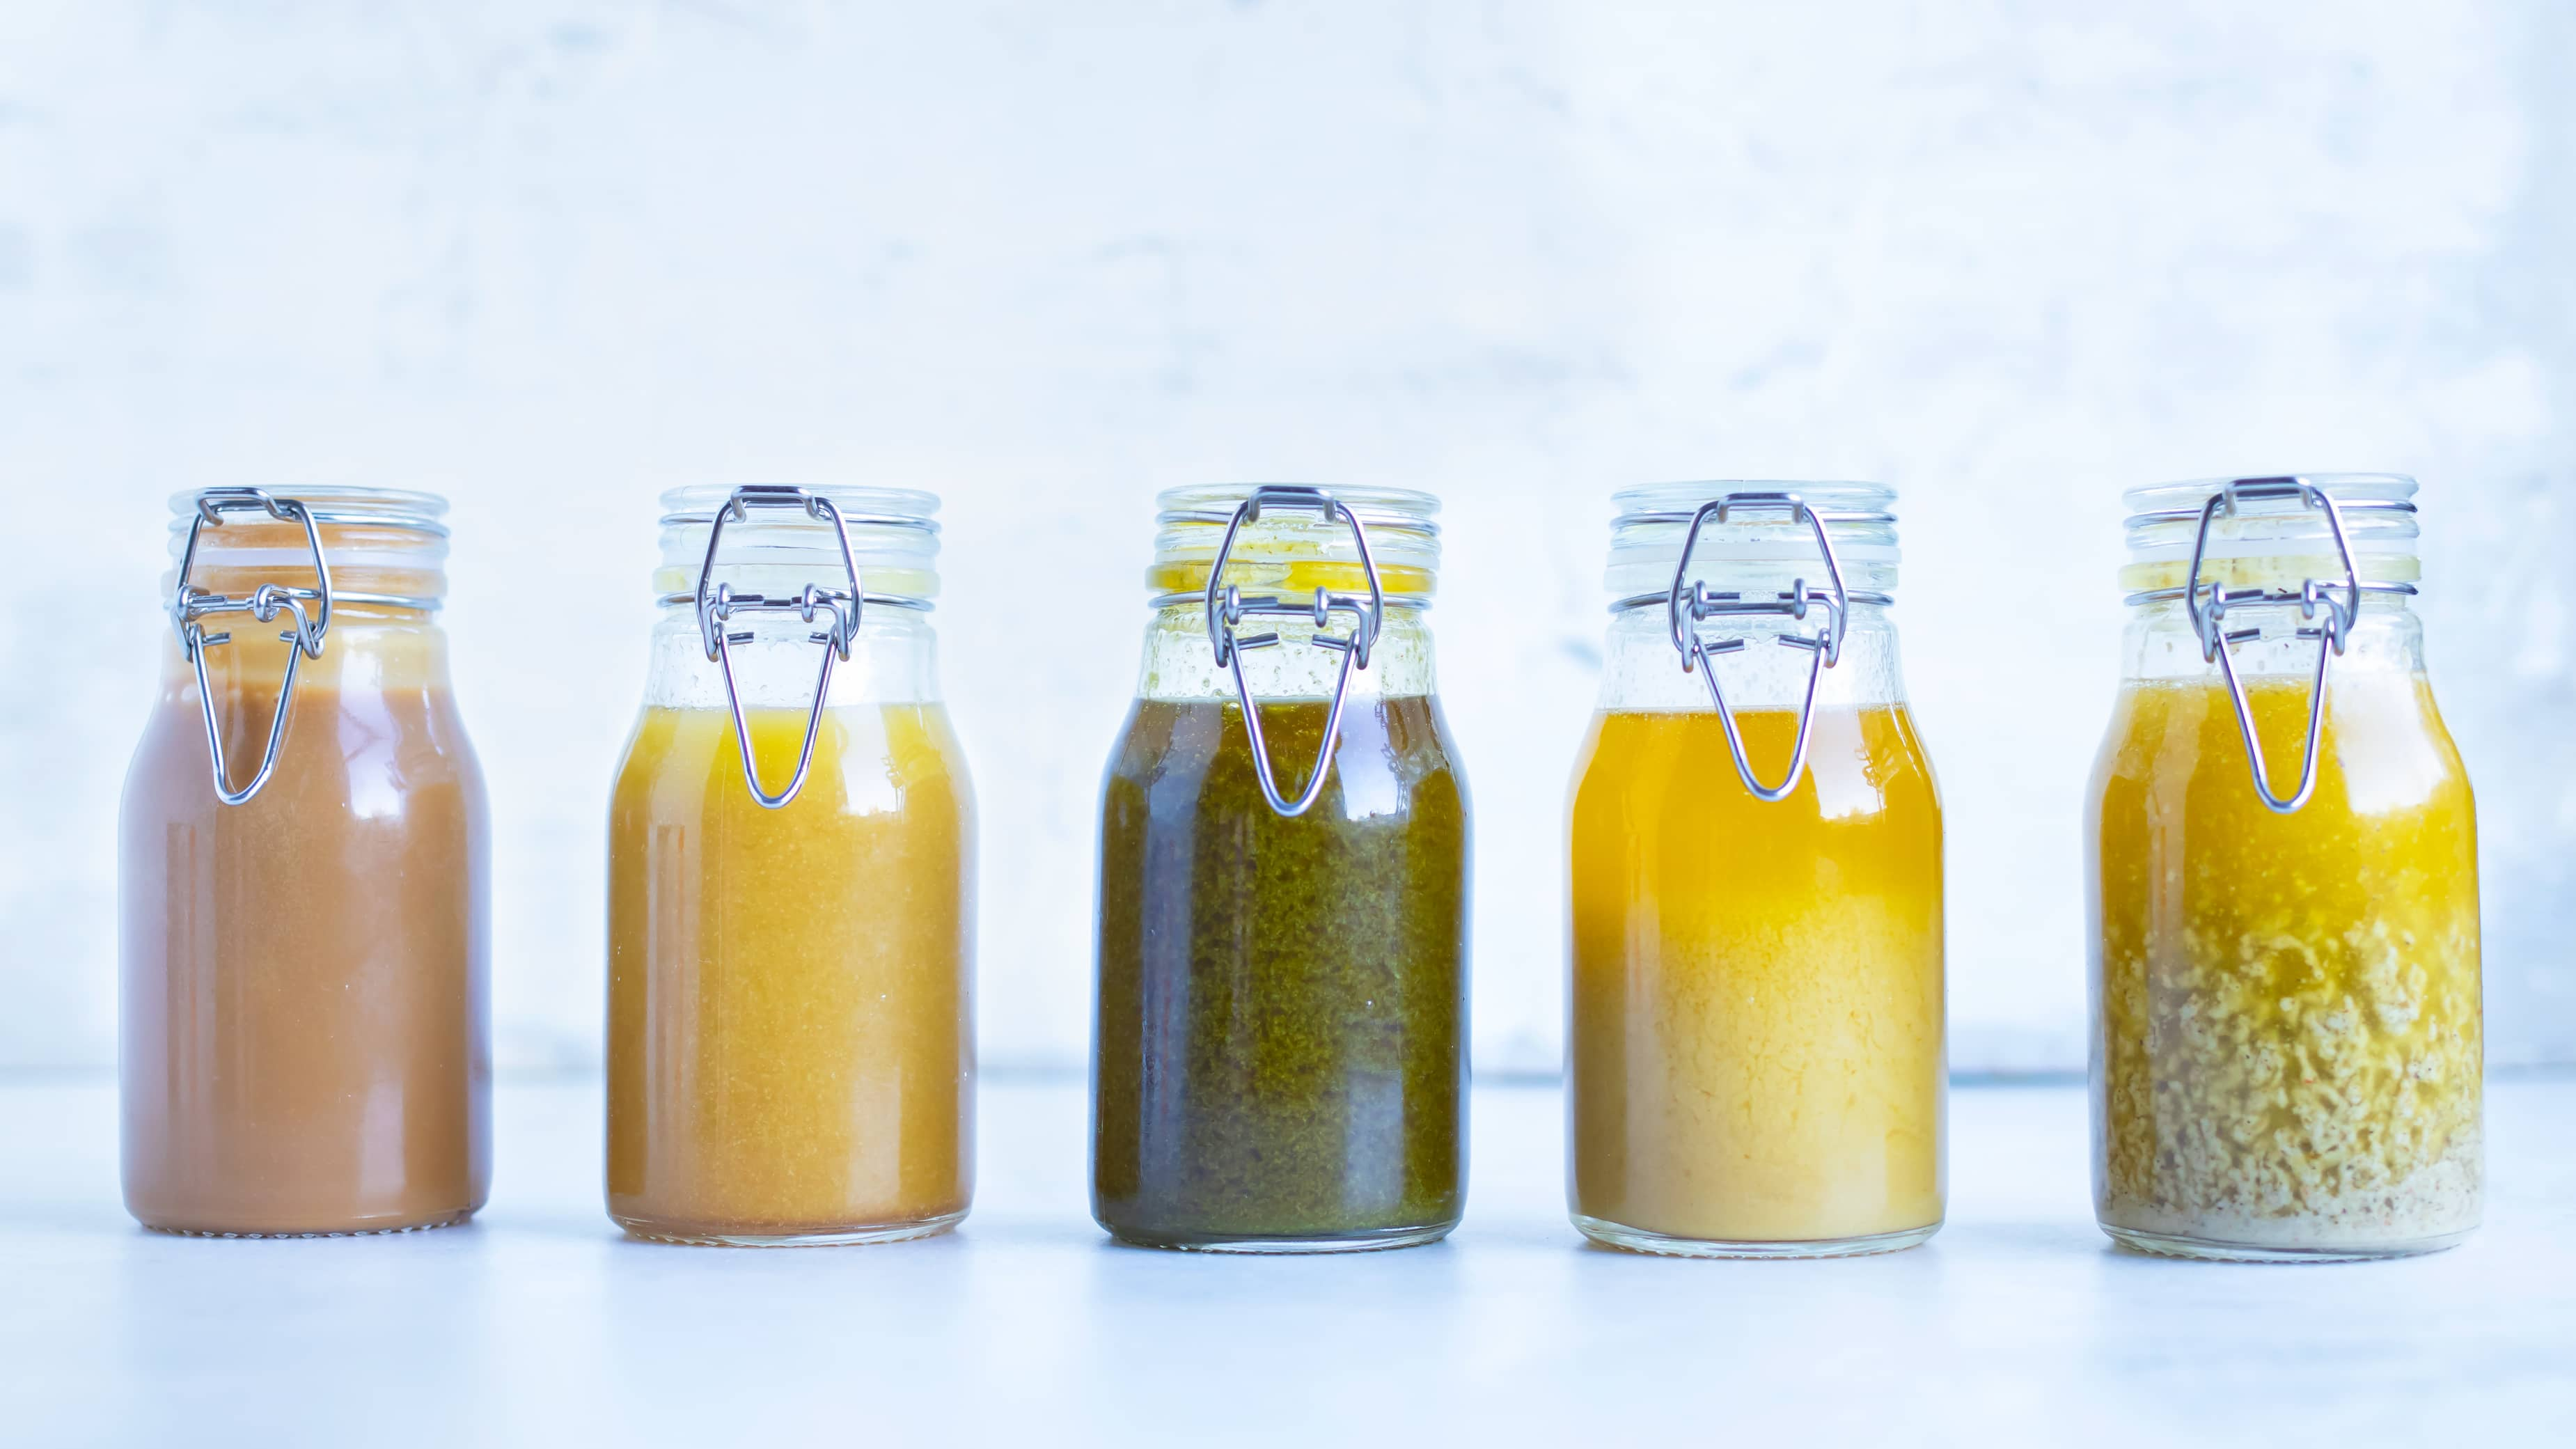 Five glass jars full of healthy homemade salad dressing recipes.